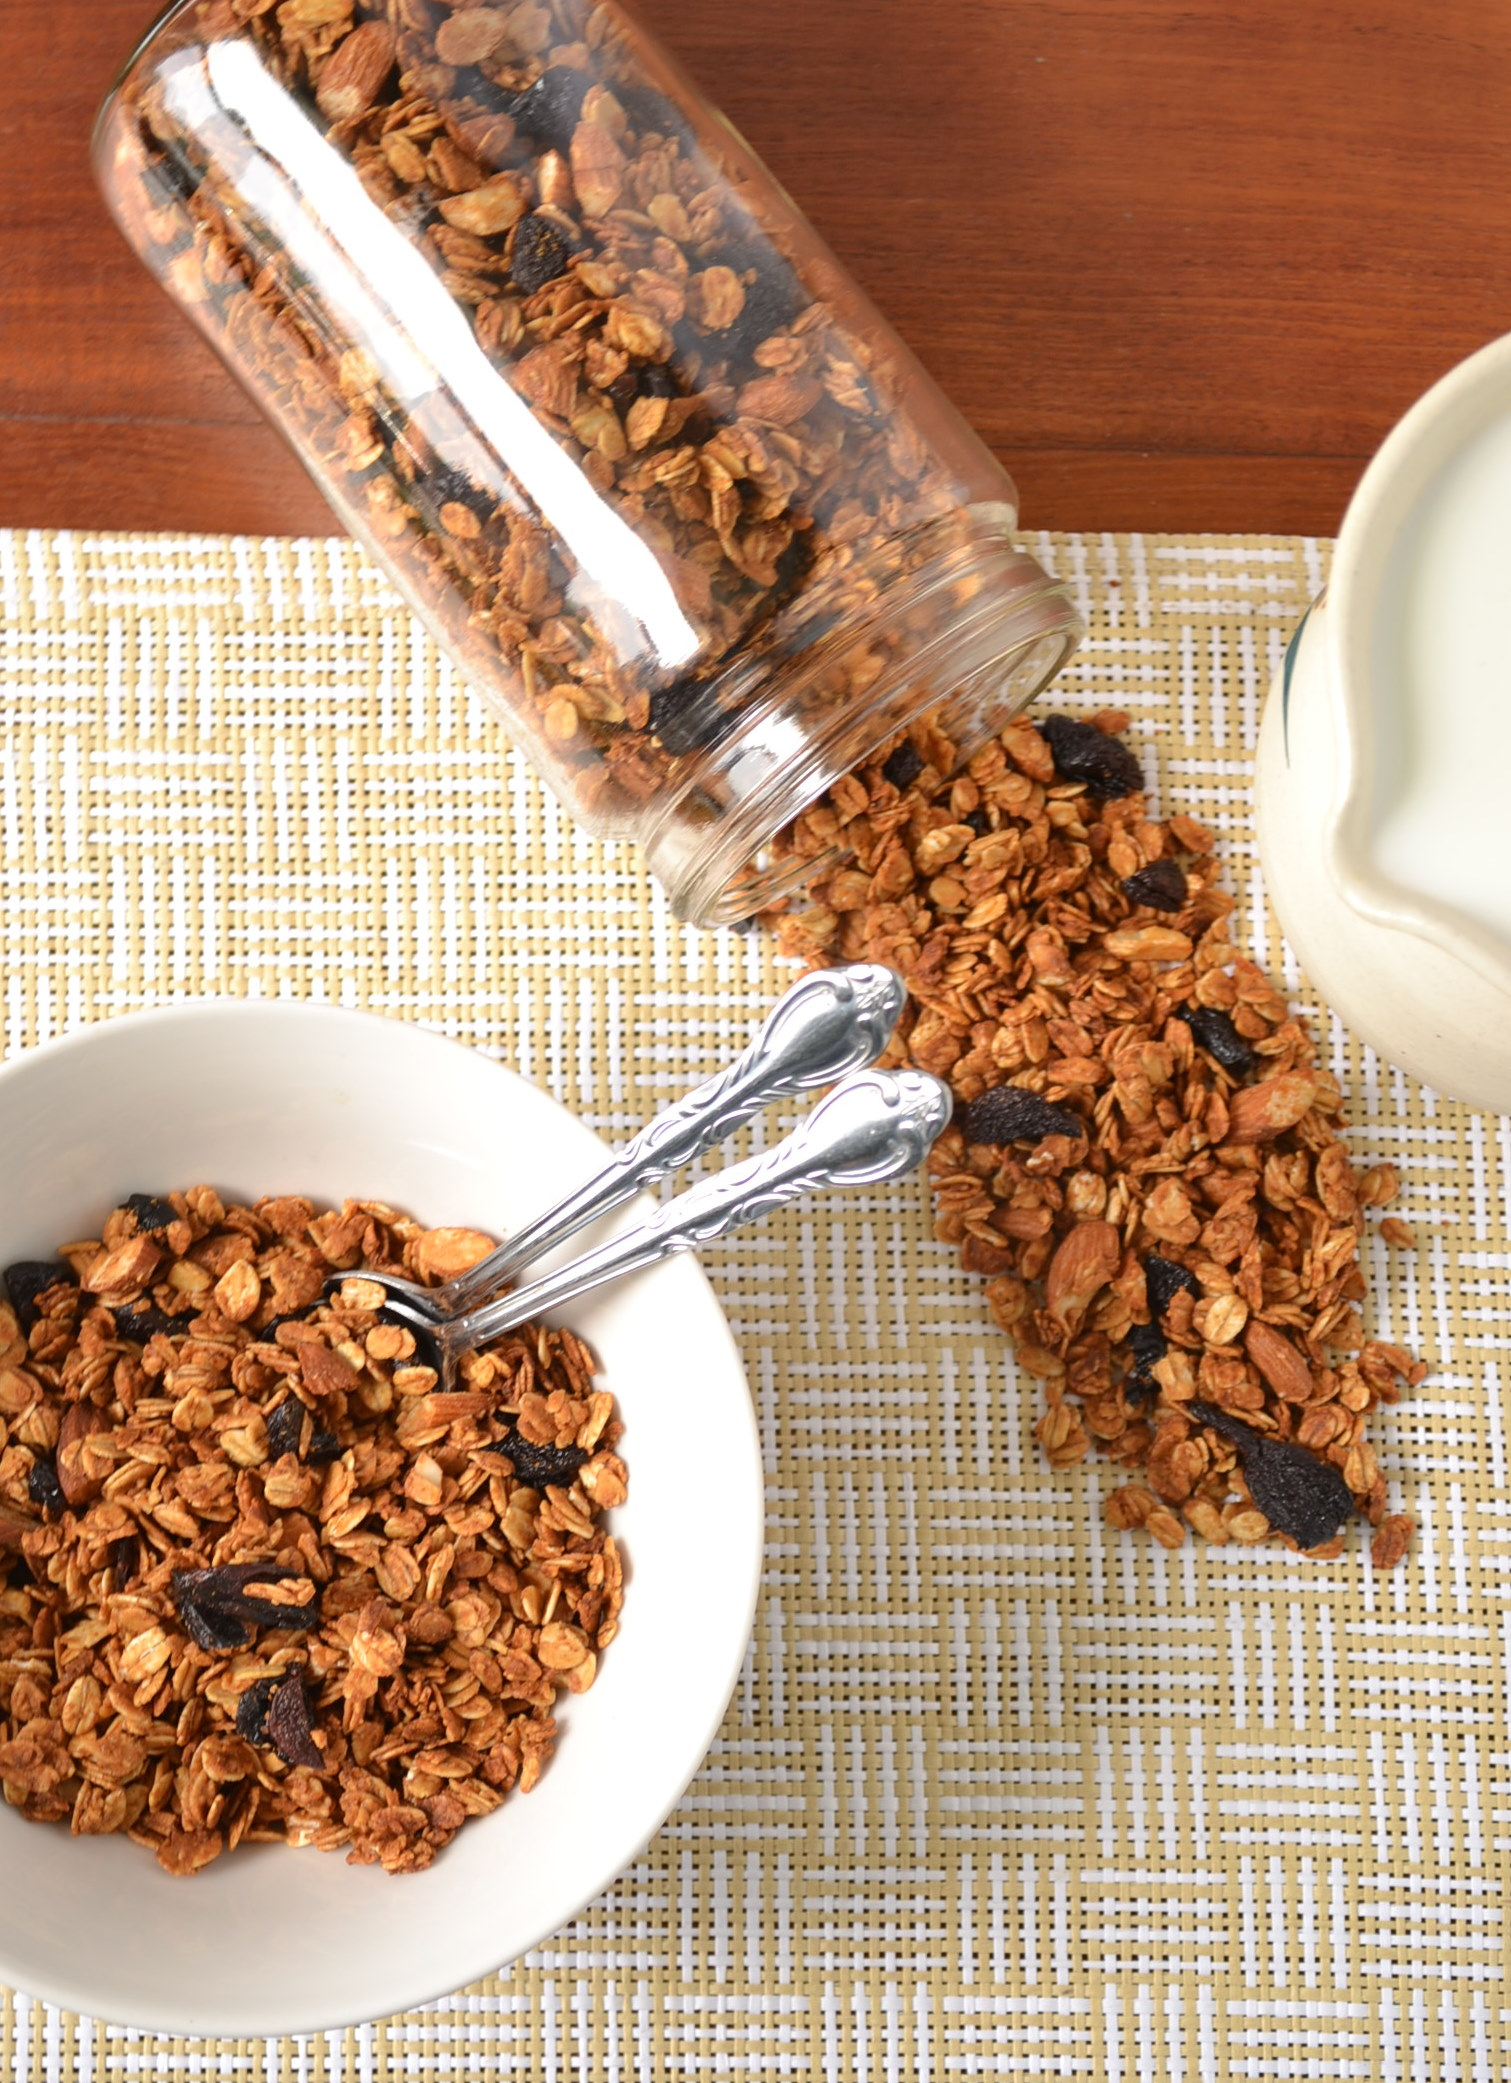 ... budget I'm sure just about anything will taste good in this granola